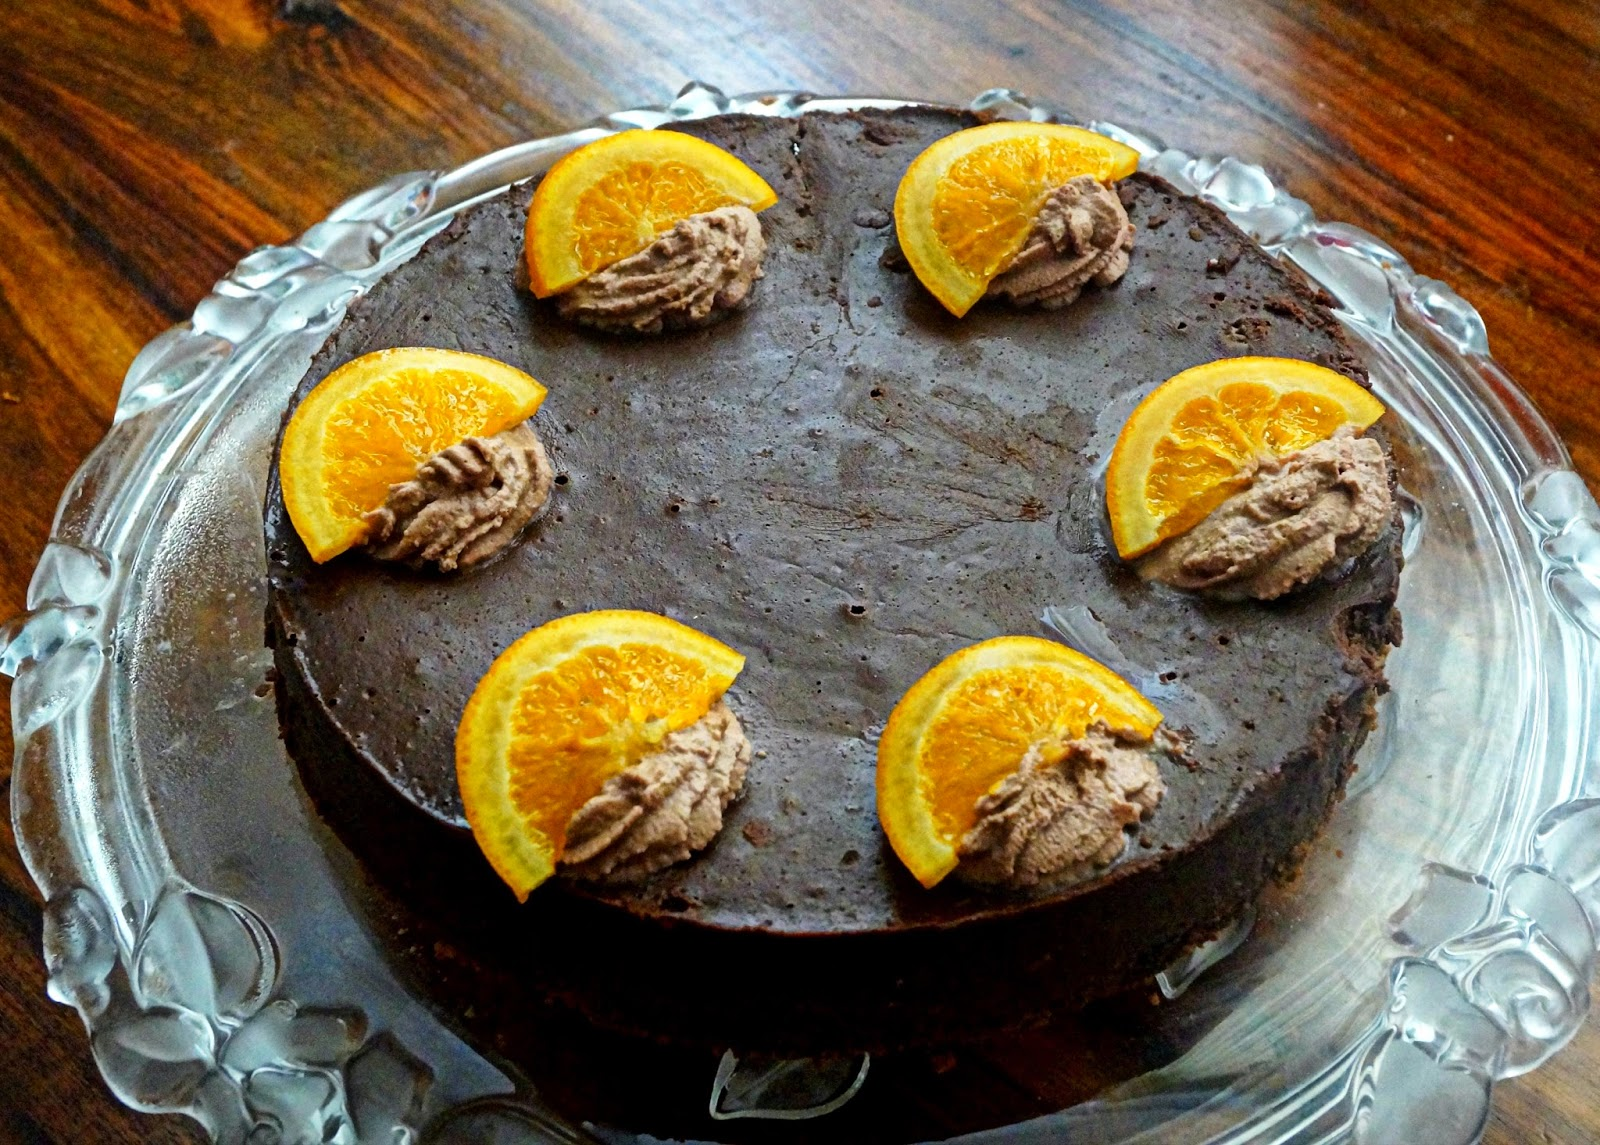 http://cupcakeluvs.blogspot.dk/2014/10/double-chocolate-orange-cheesecake.html